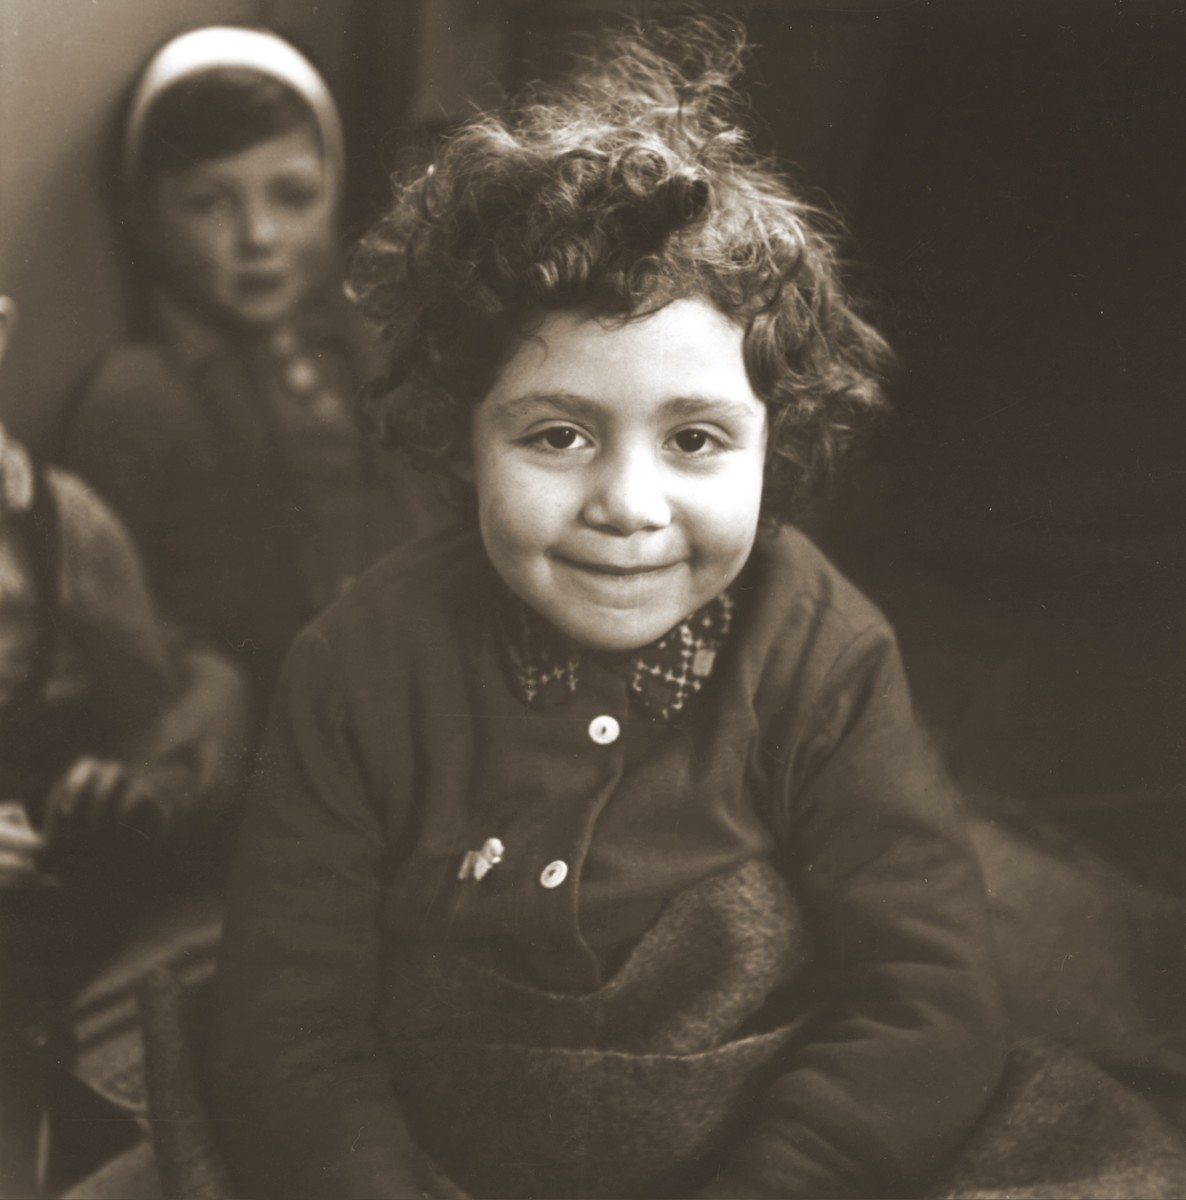 Portrait of a young Jewish child in the Hadwigschulhaus in St. Gallen.